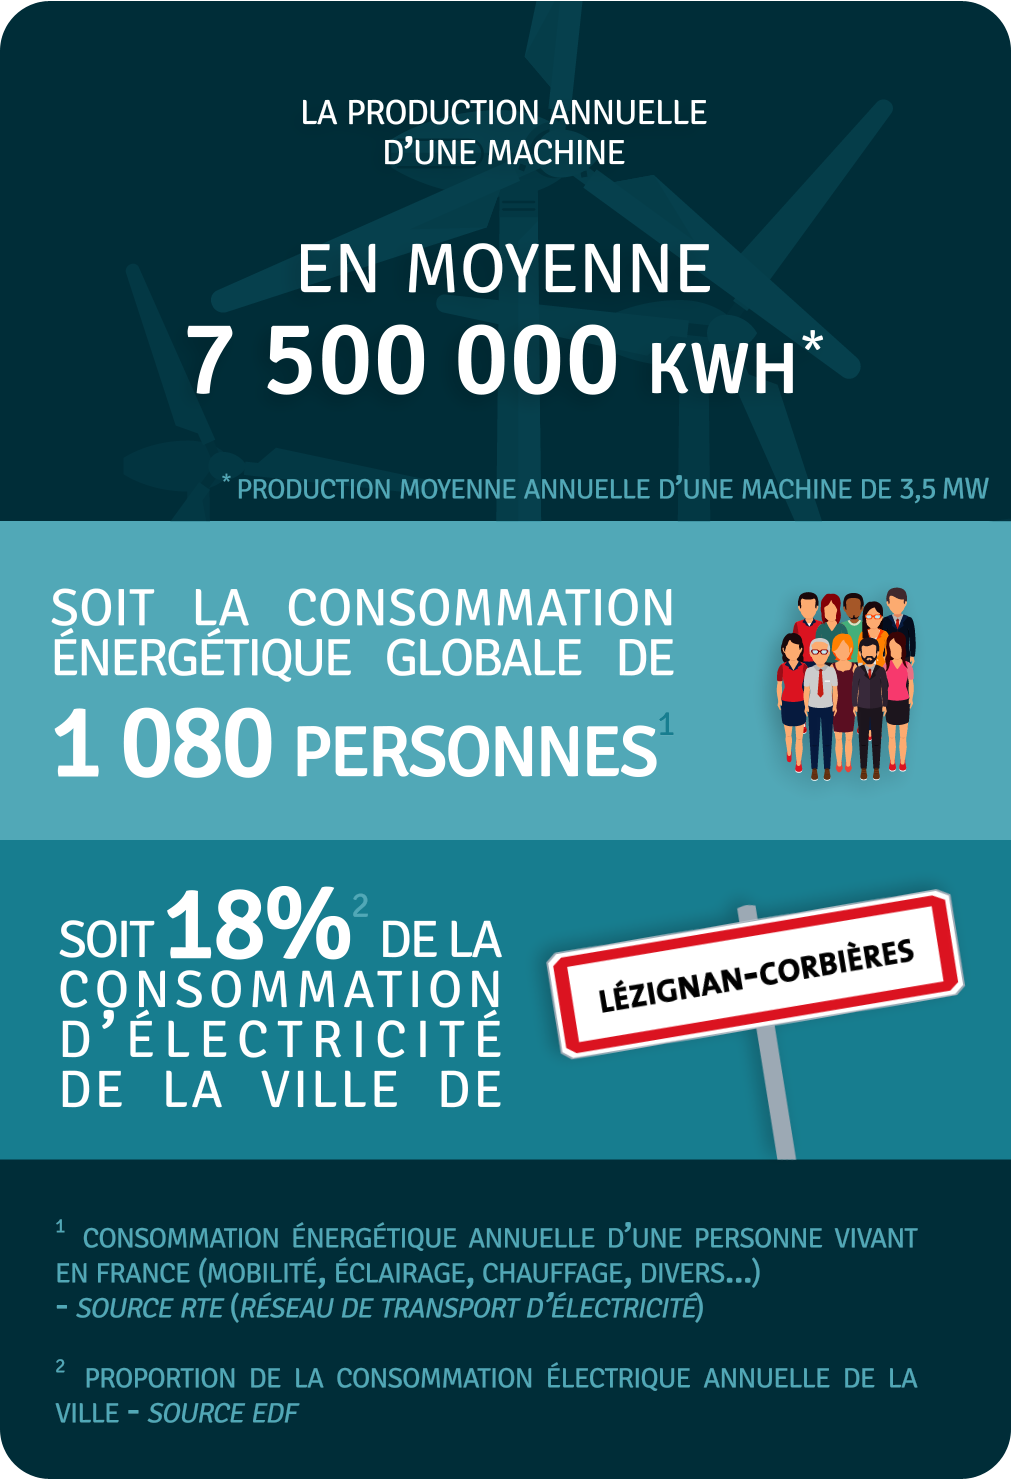 Production annuelle 7 500 000 kWh